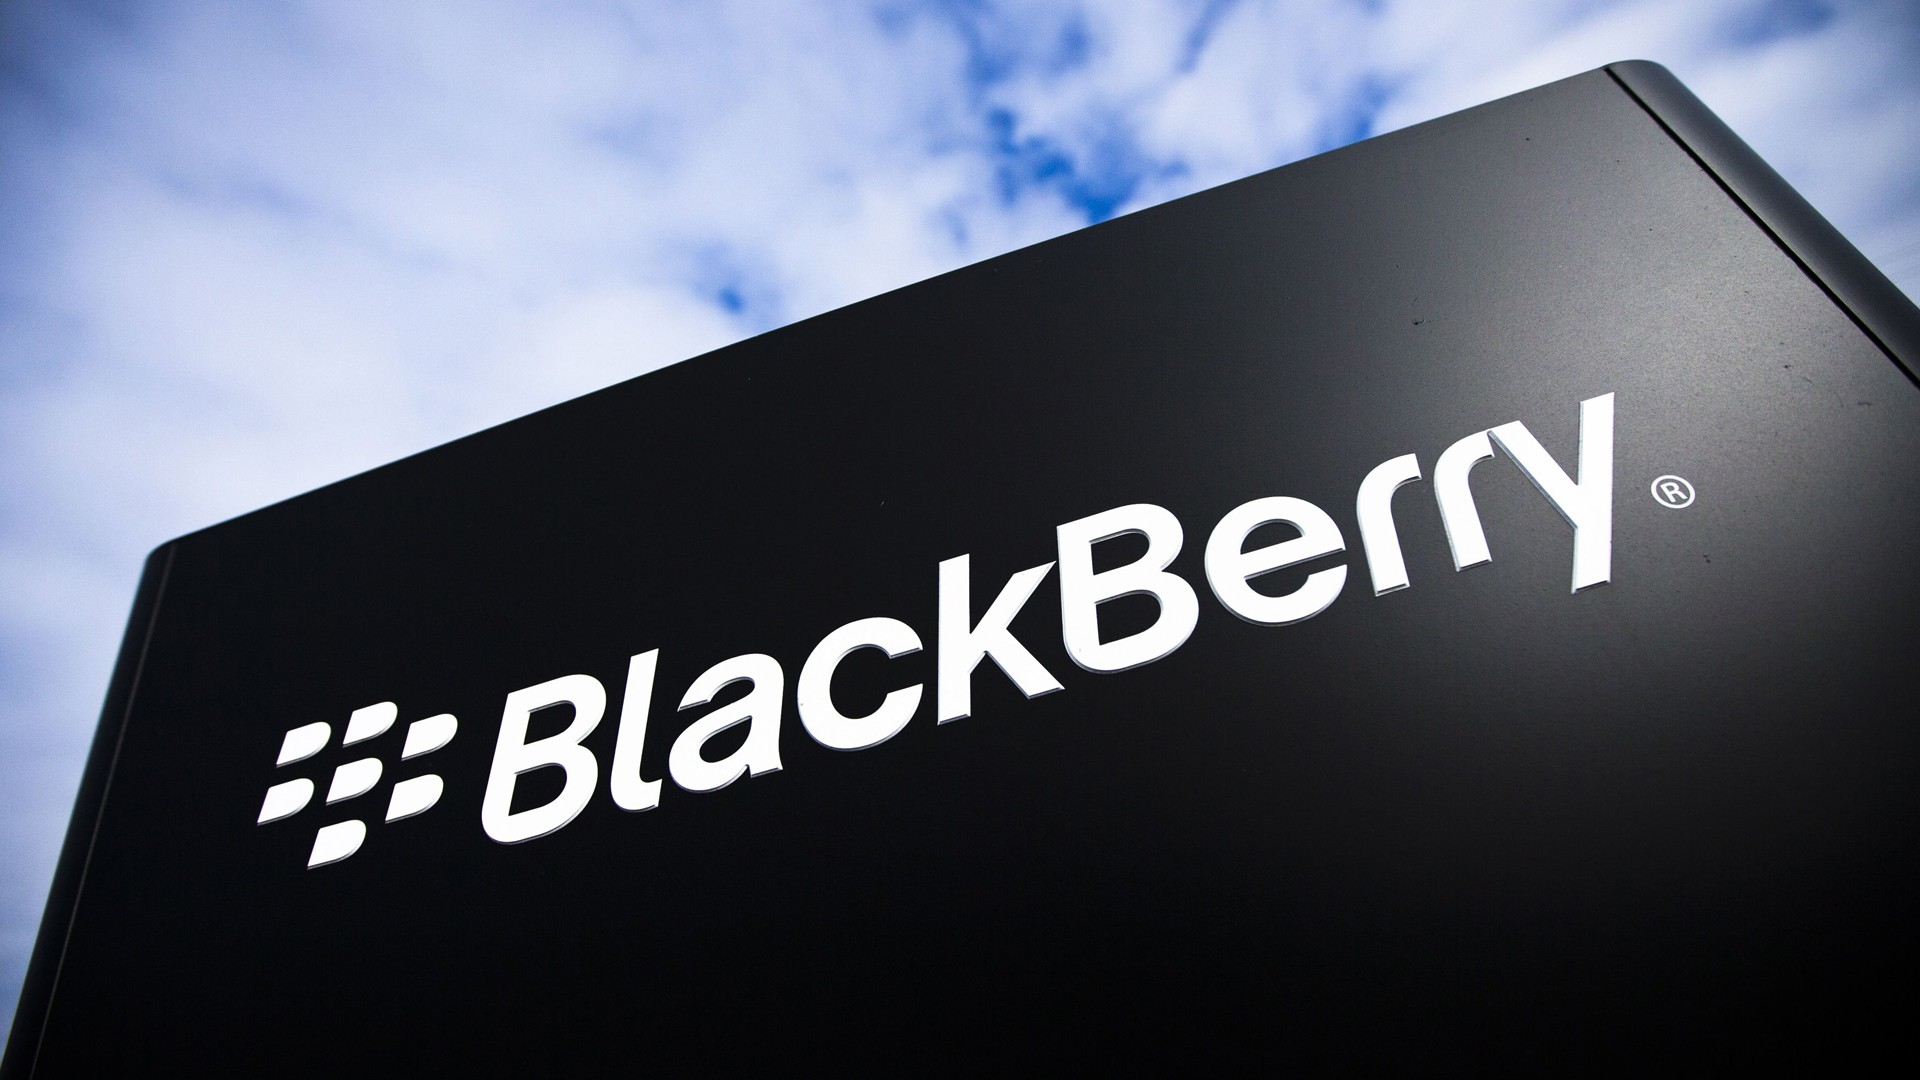 Despite Lackluster Guidance and Muted Quarterly Results BlackBerry Remains an Interesting Opportunity Play